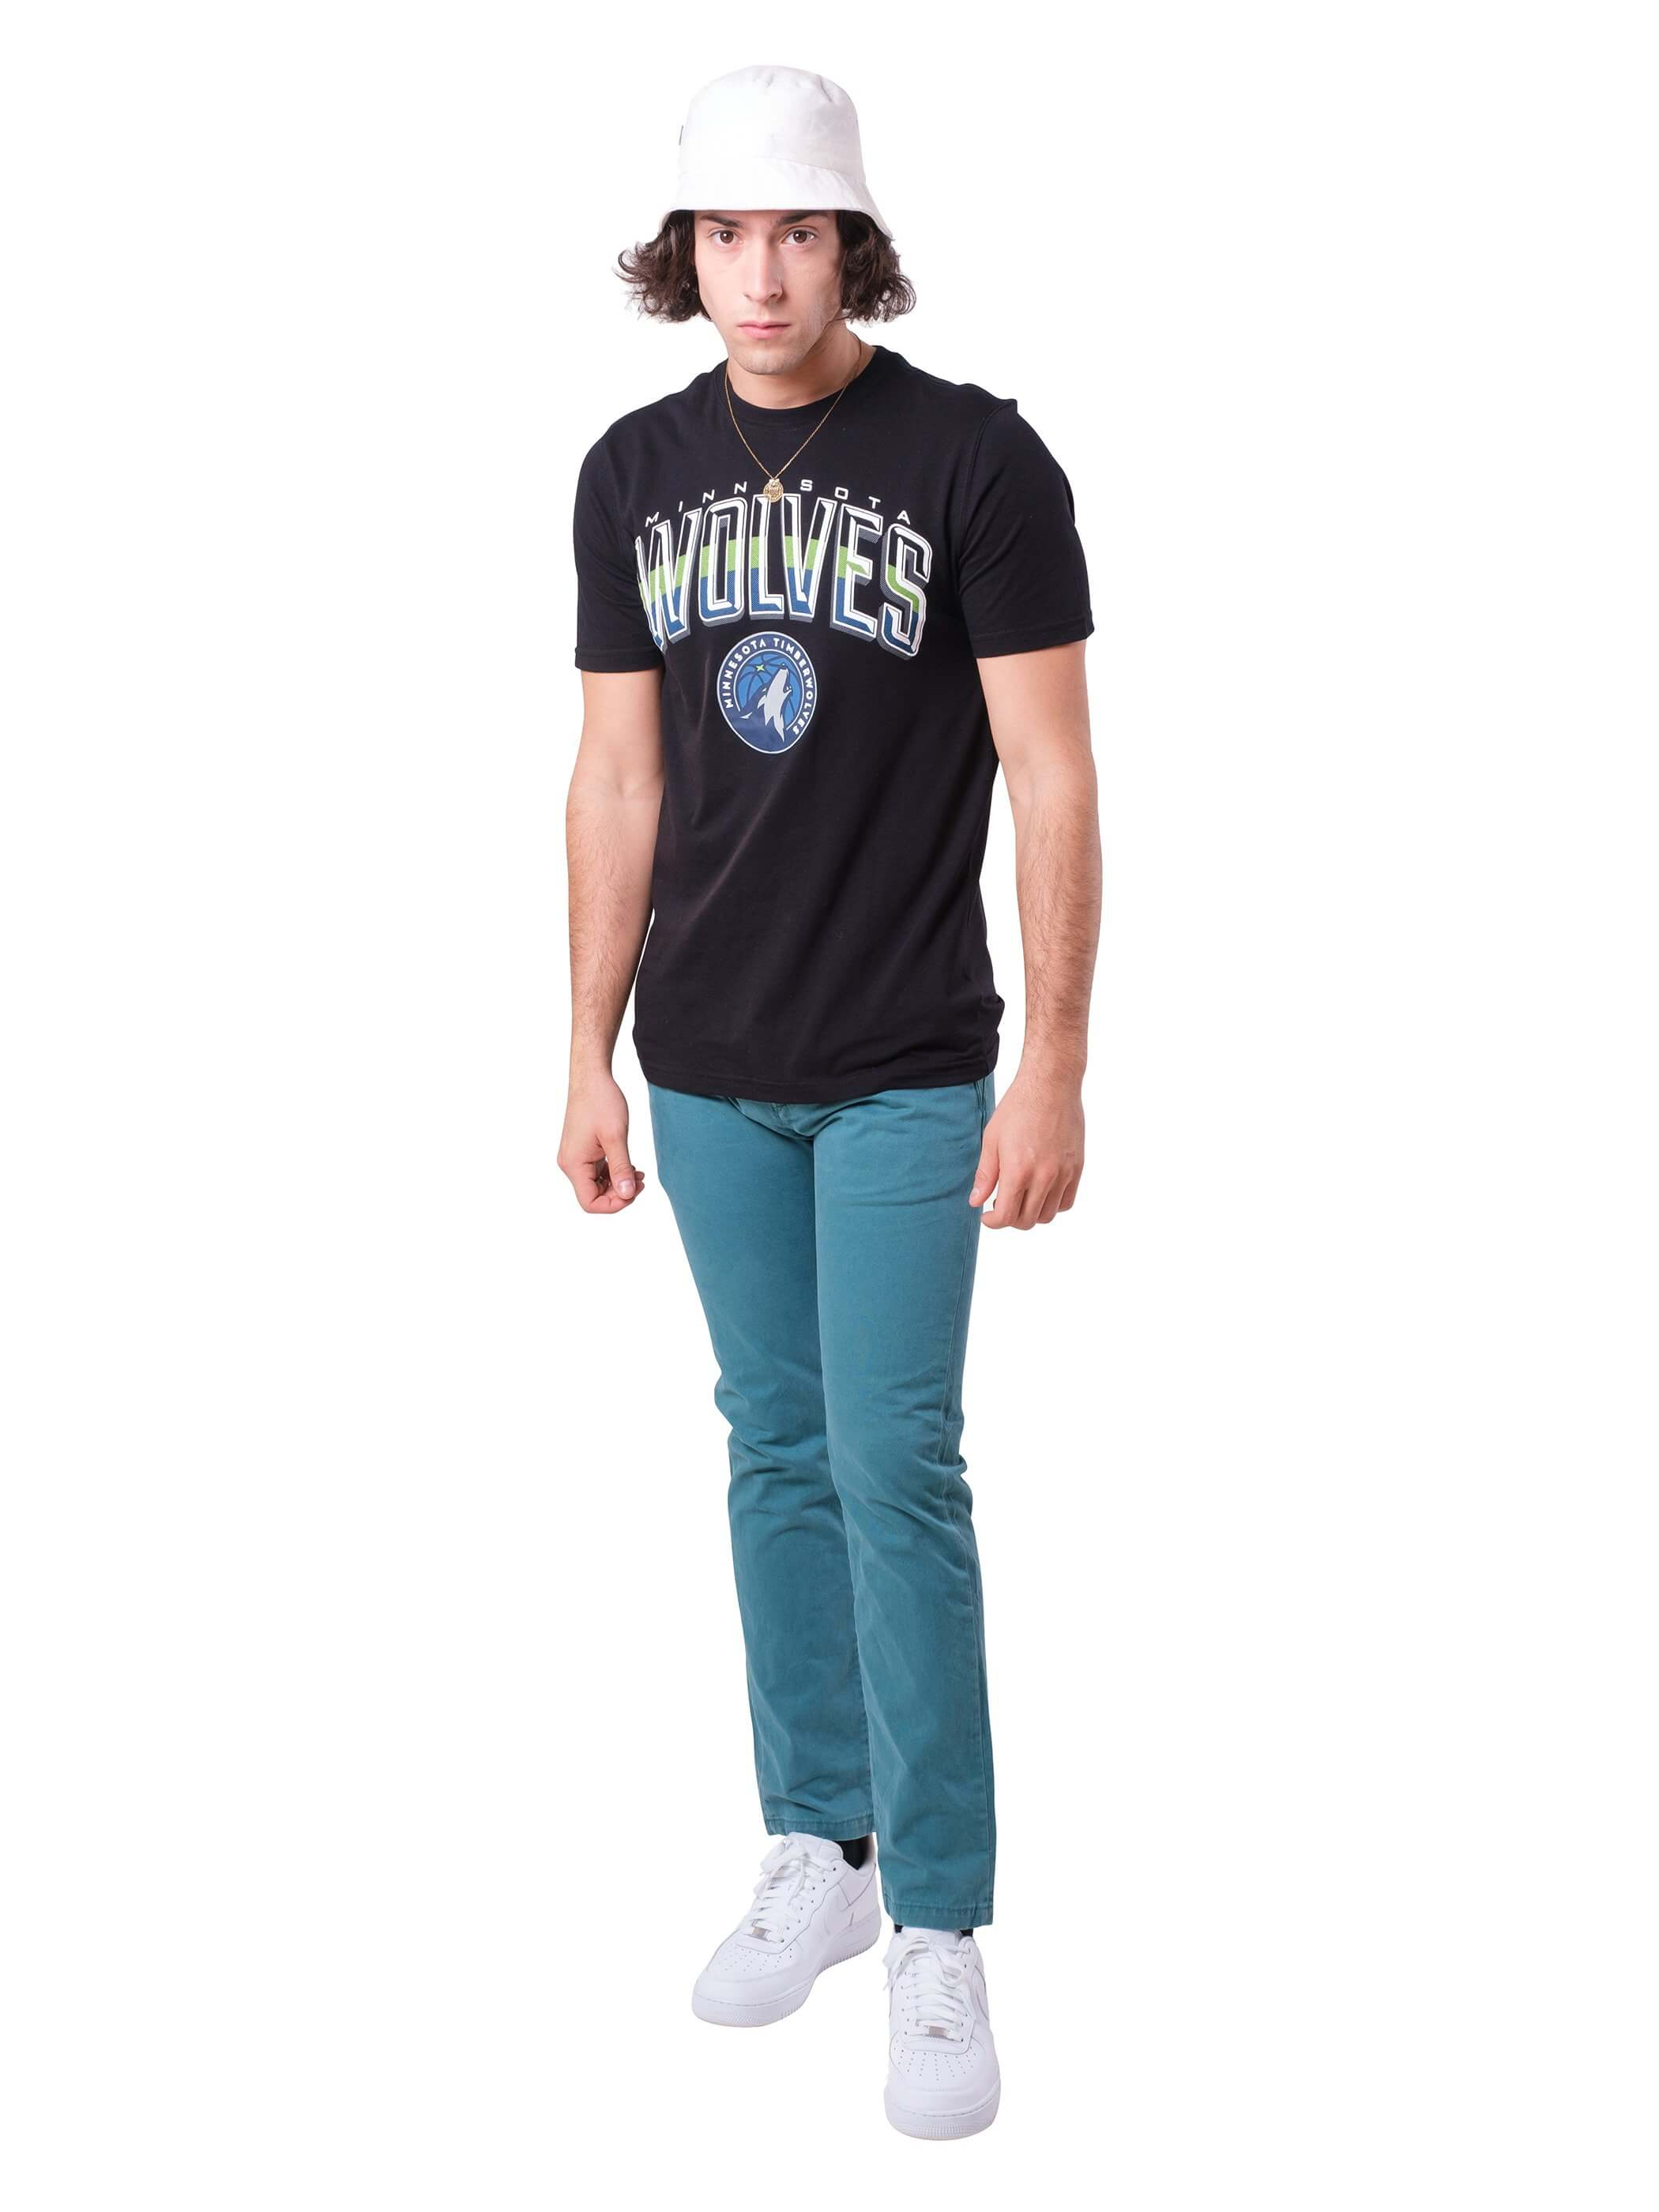 NBA Minnesota Timberwolves Men's Short Sleeve Tee|Minnesota Timberwolves